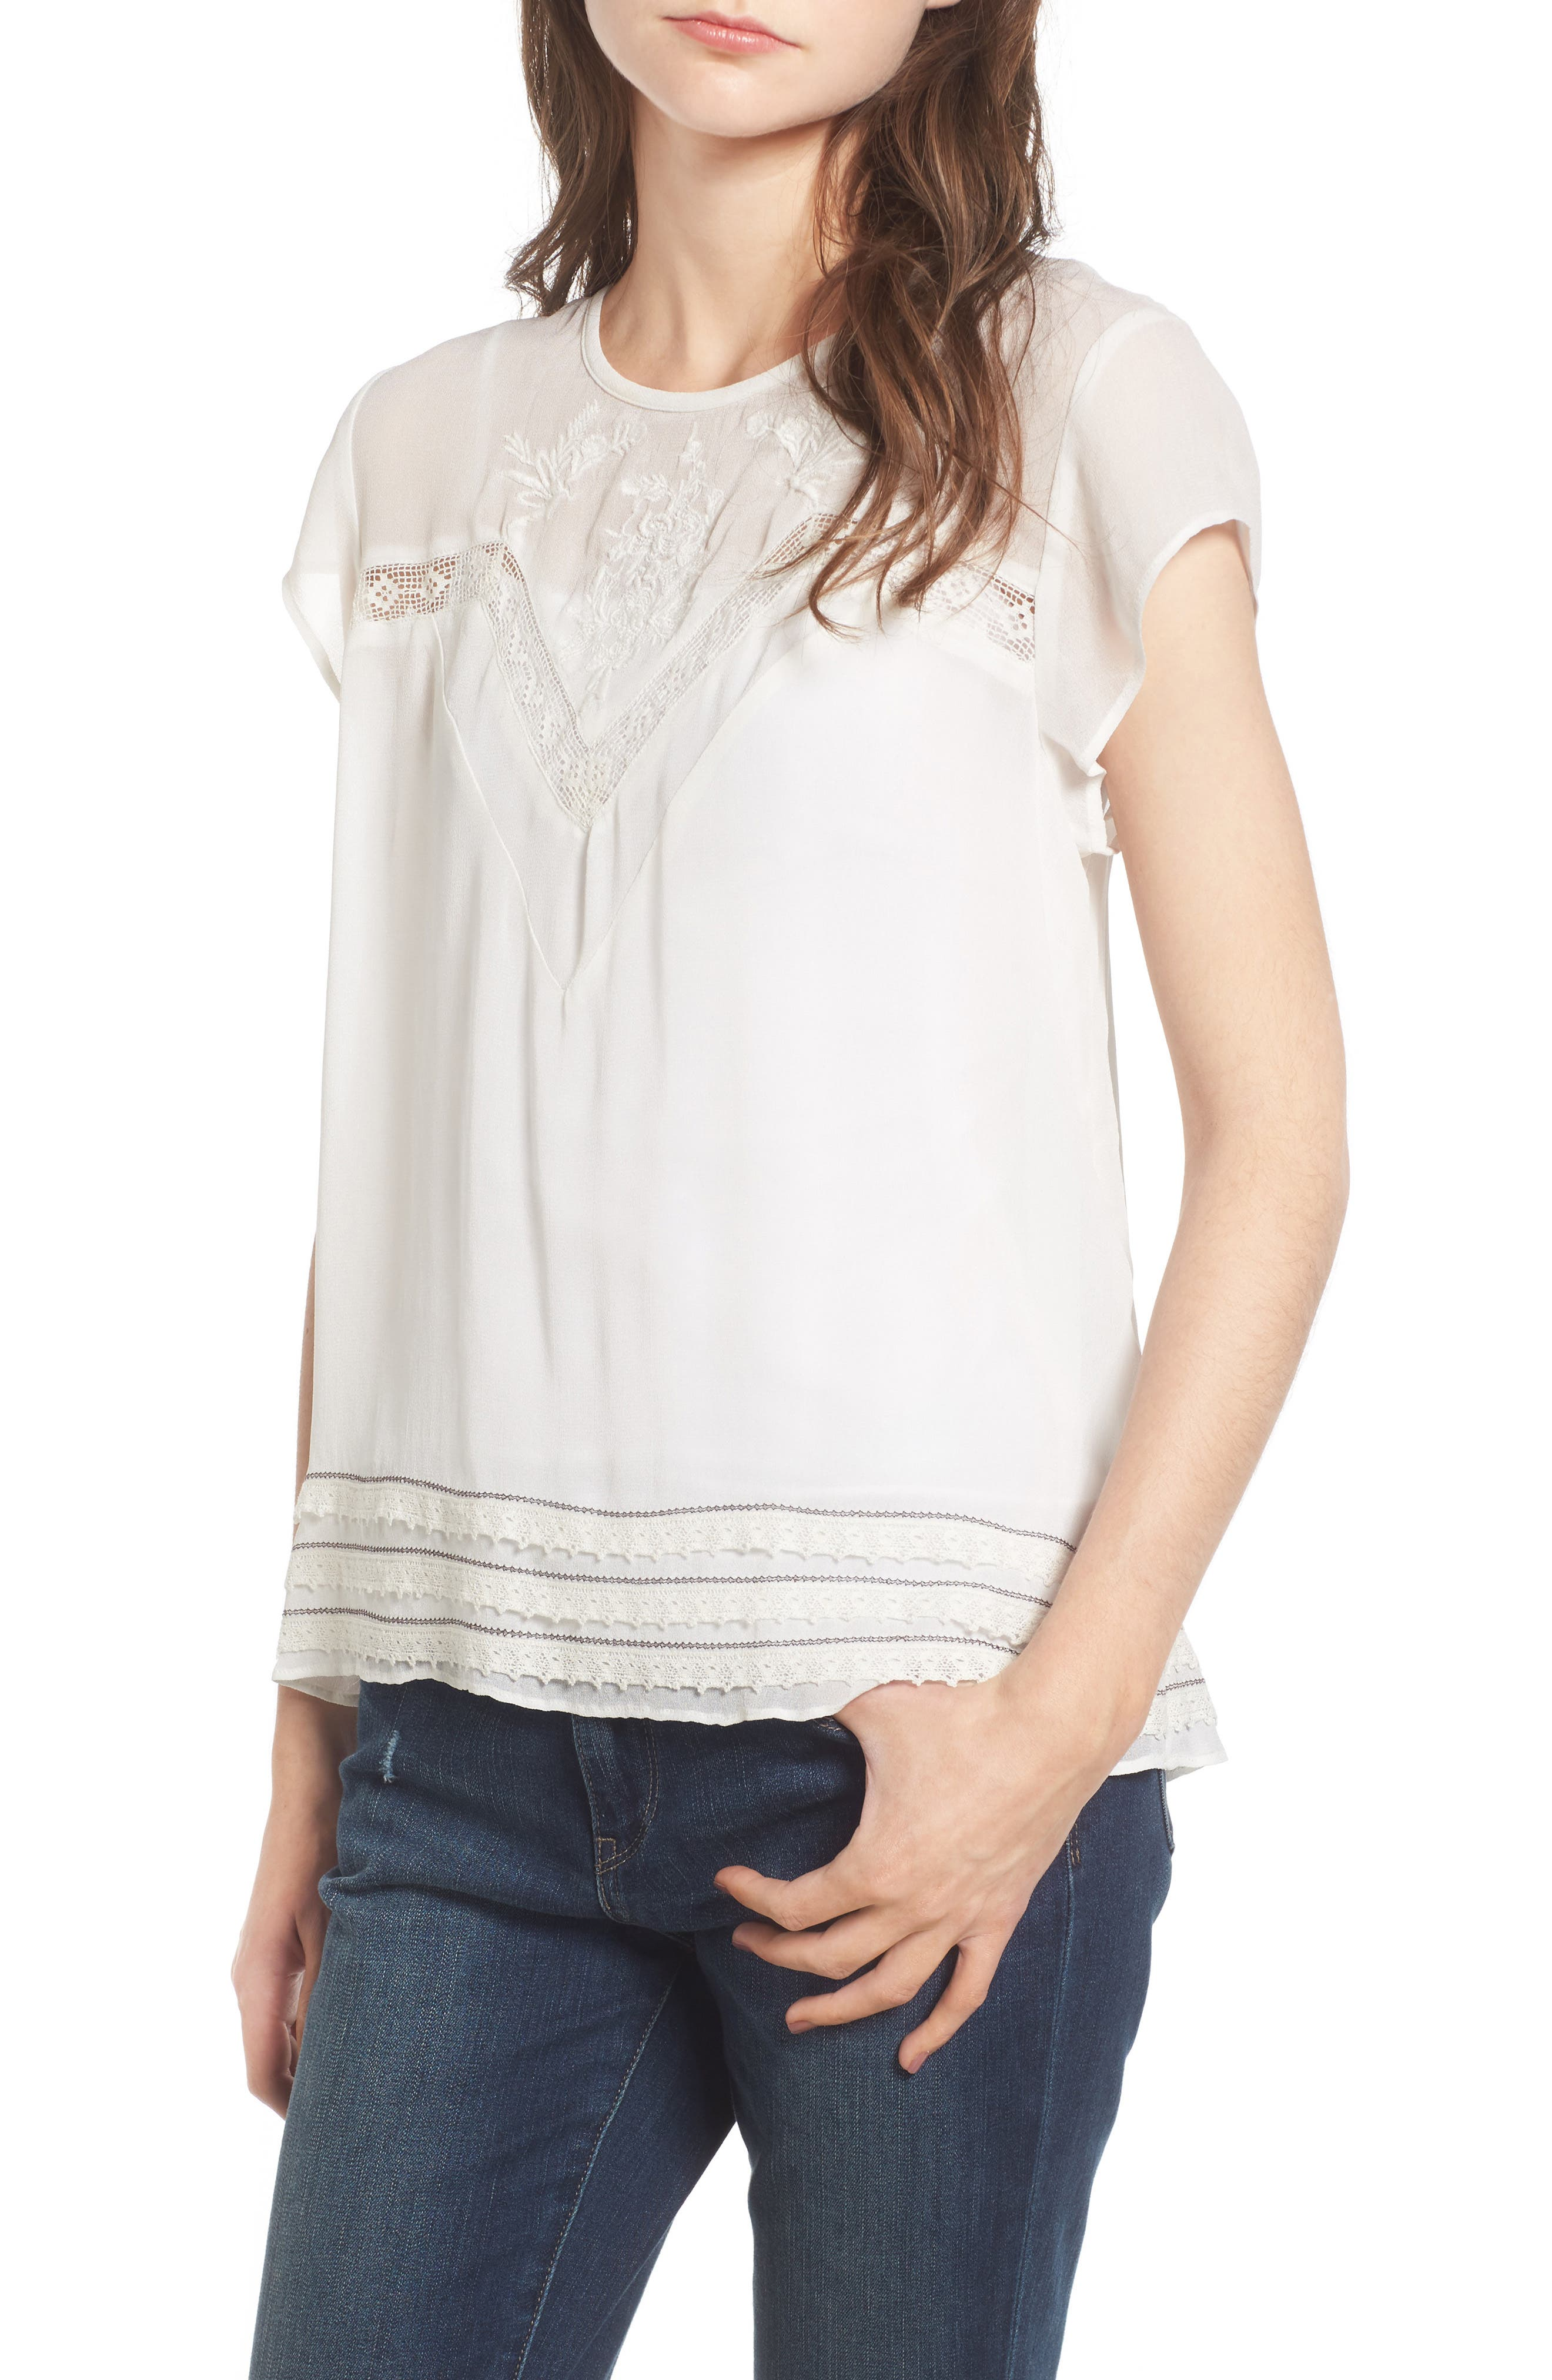 Main Image - Hinge Embroidered Lace Yoke Top